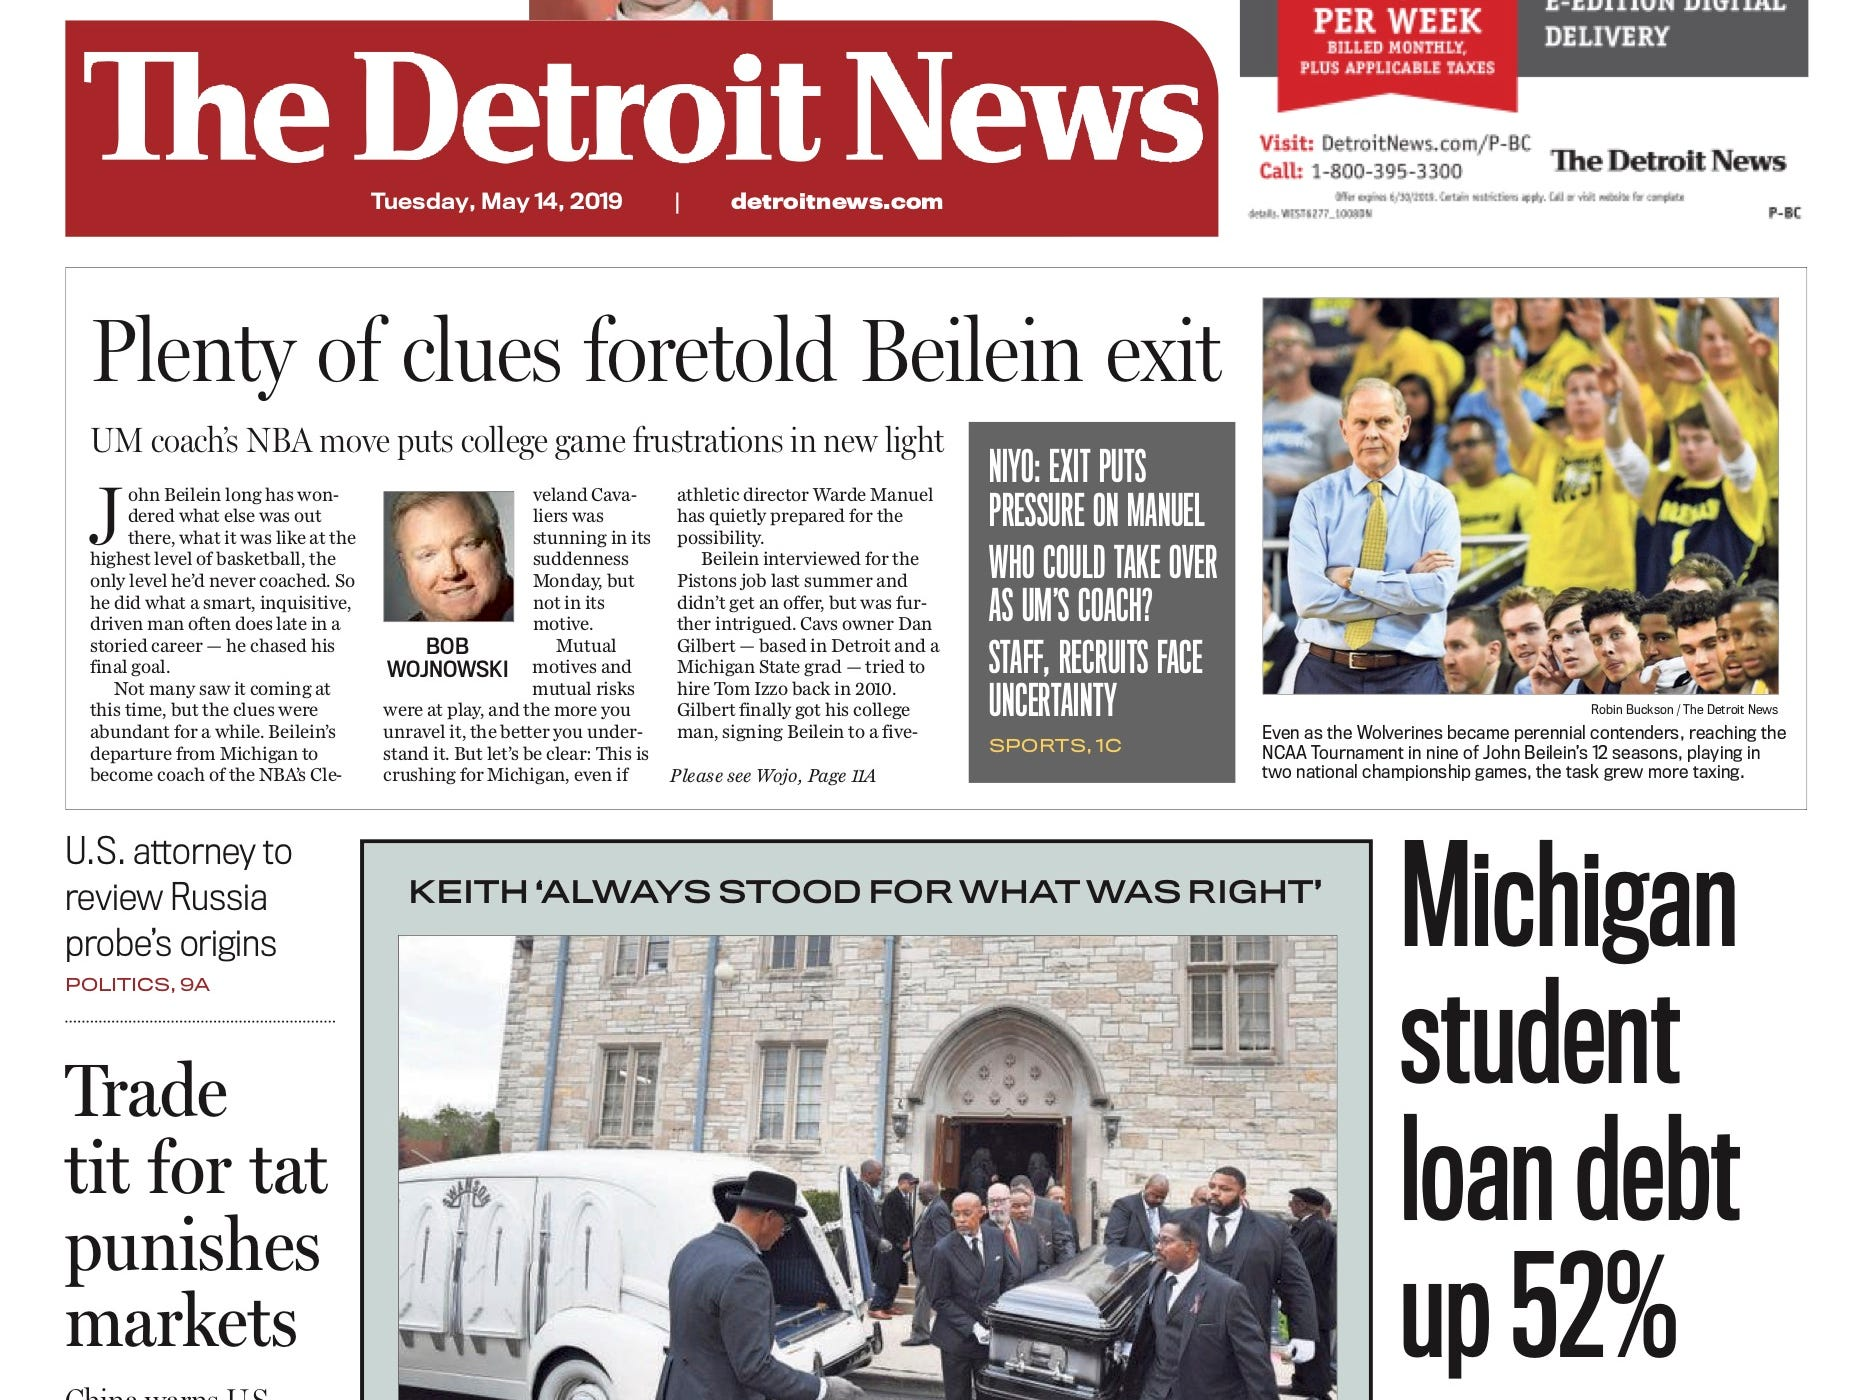 The front page of the Detroit News on May 14, 2019